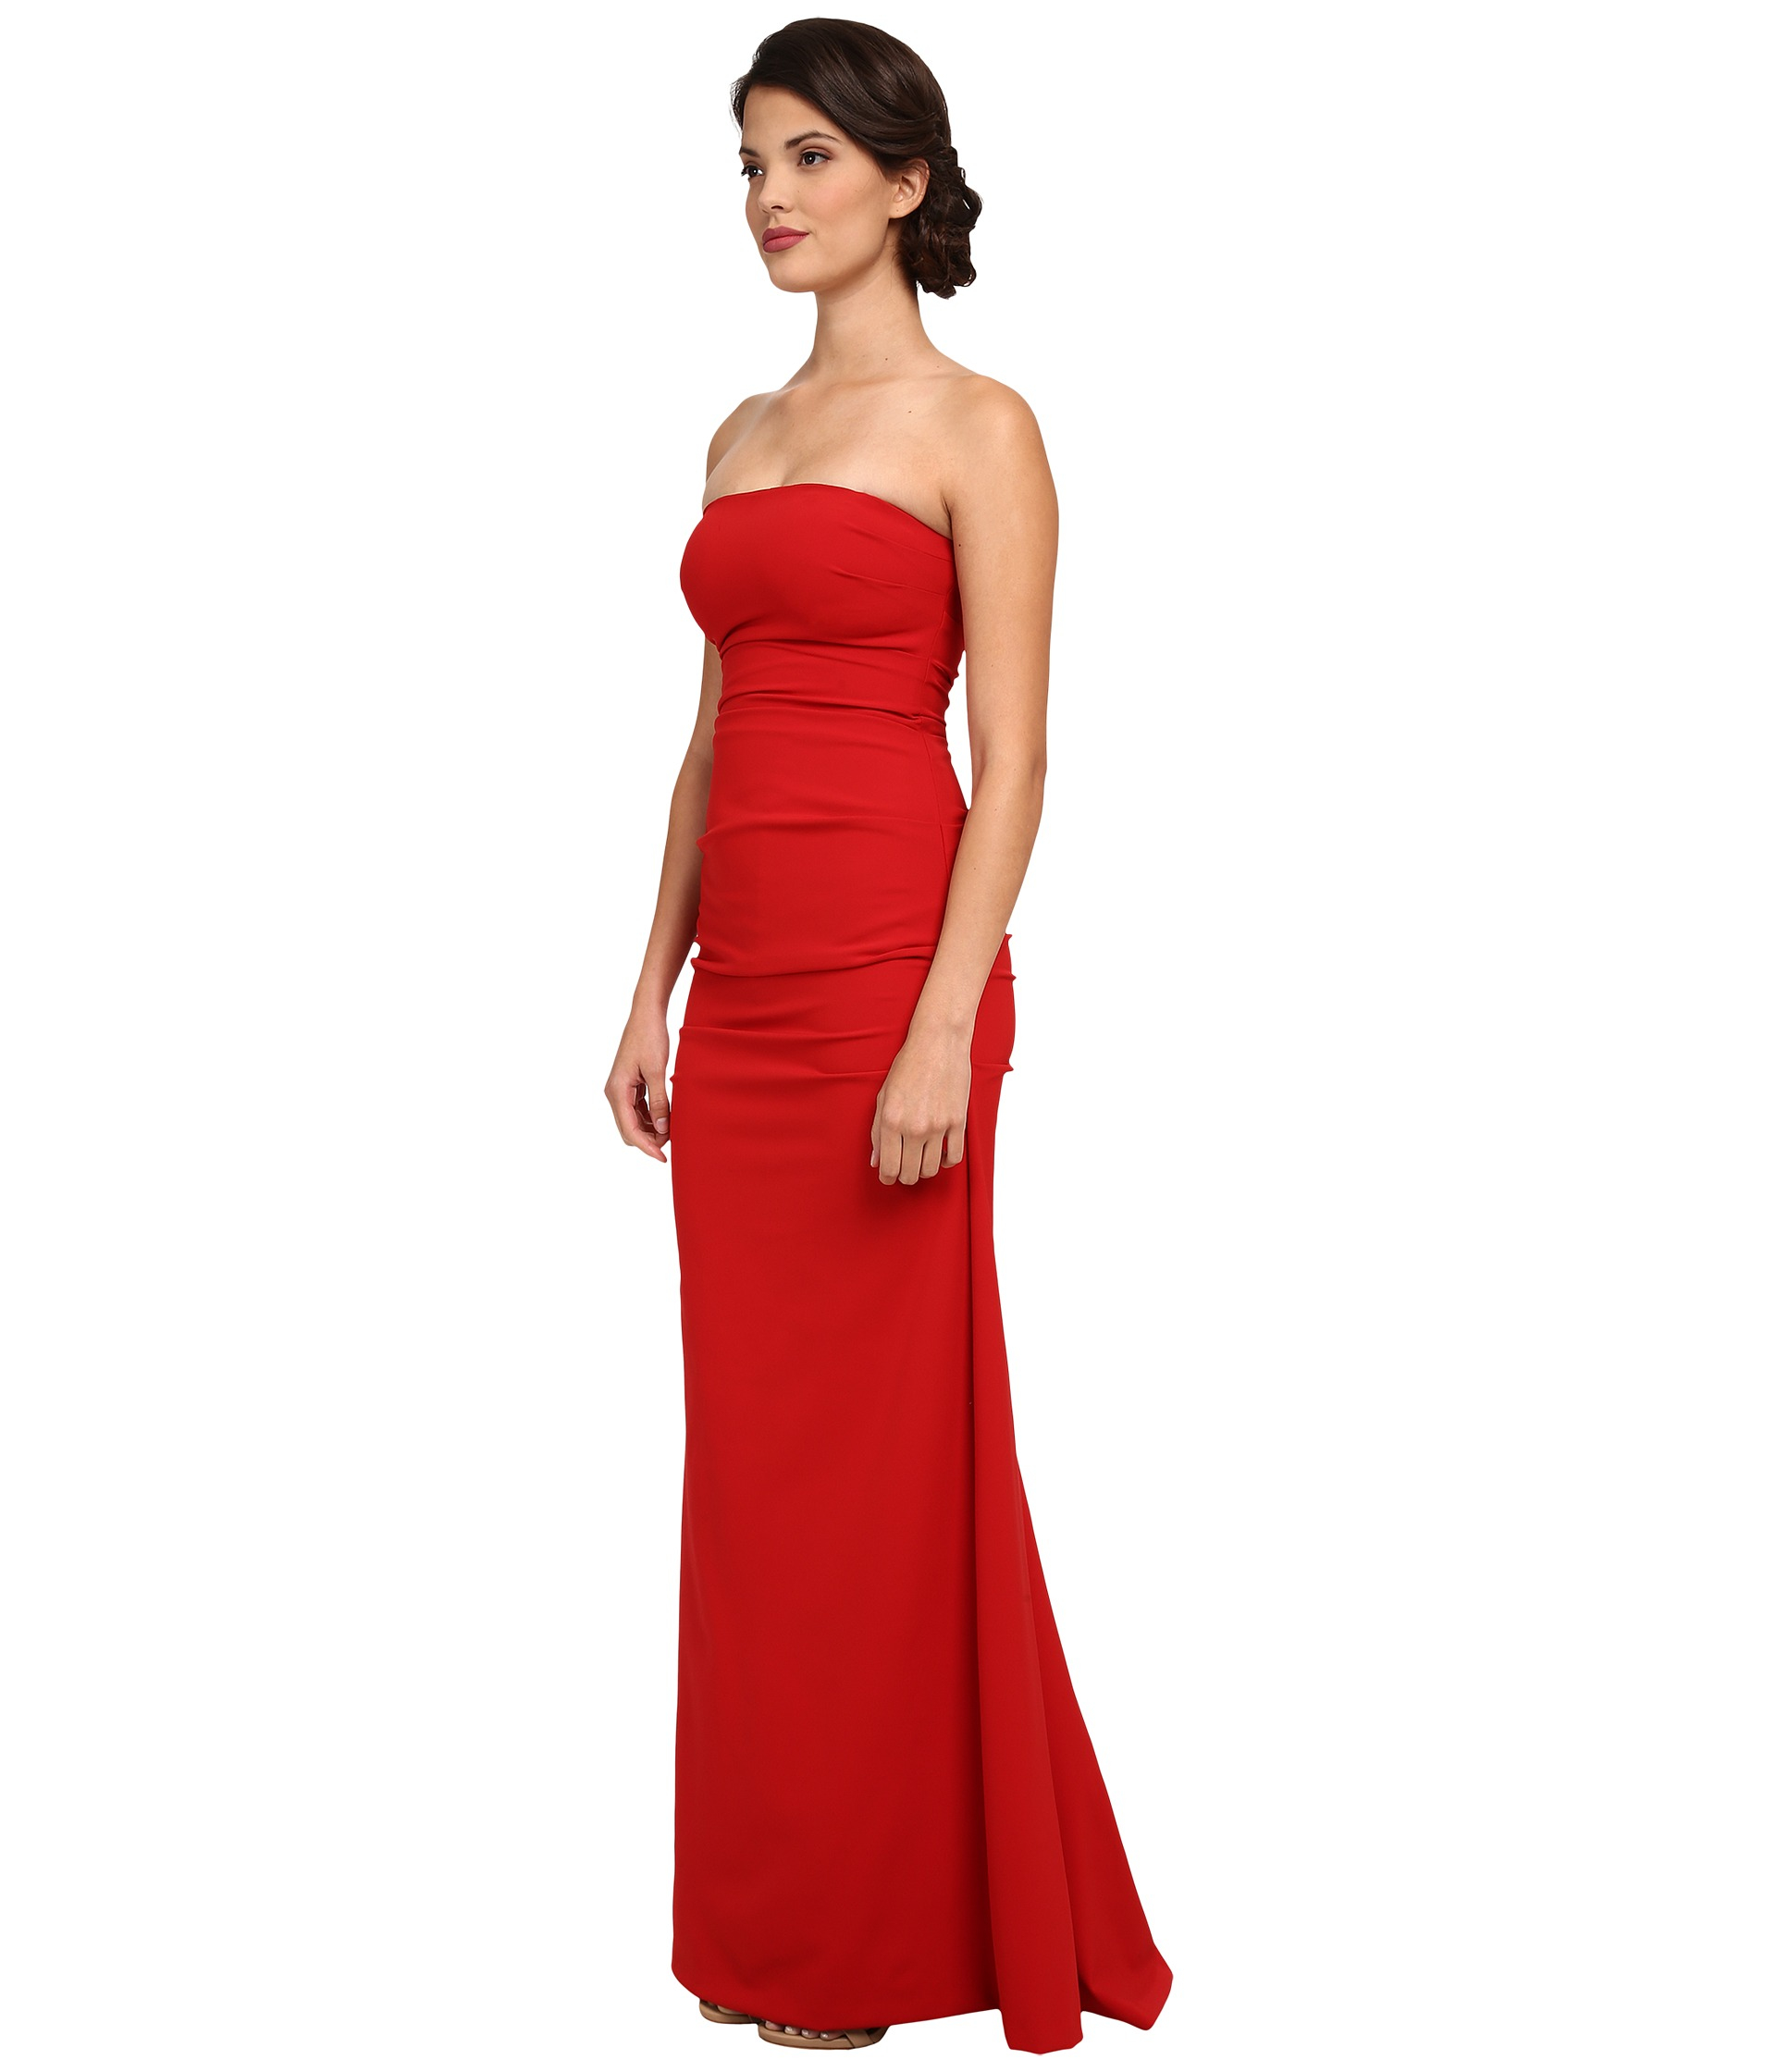 Nicole Miller Strapless Red Dress – fashion dresses